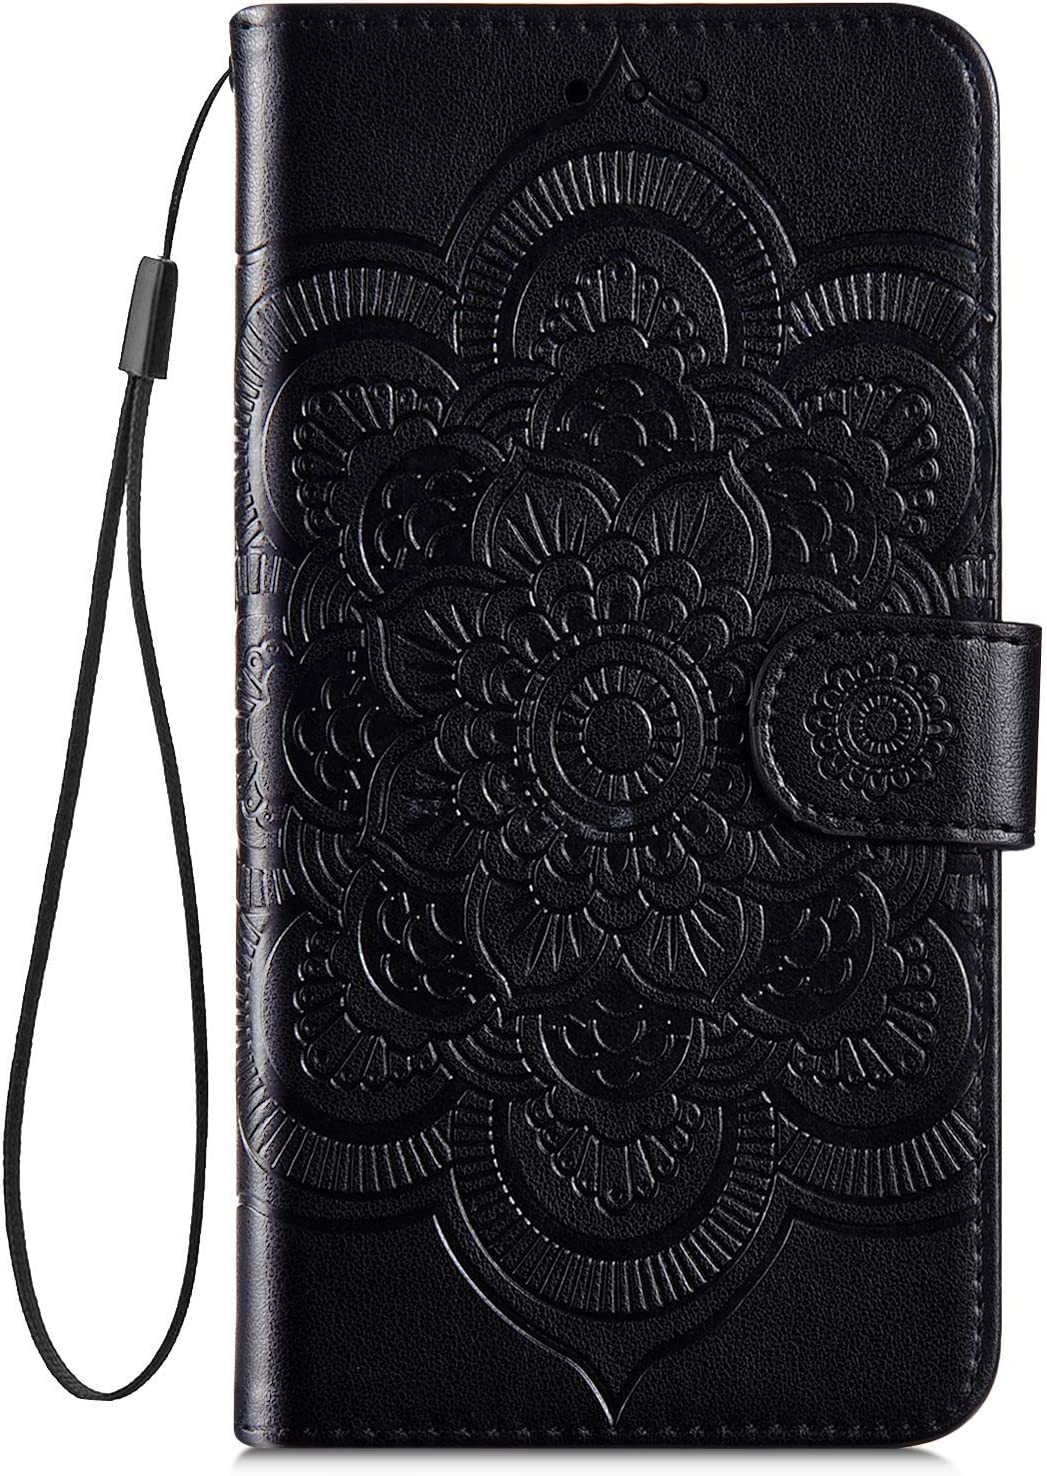 IKASEFU Compatible with iphone 11 Case Emboss Sun mandala Floral Pu Leather Wallet Strap Case Card Slots Shockproof Magnetic Stand Feature Folio Flip Book Cover Protective Case,Black